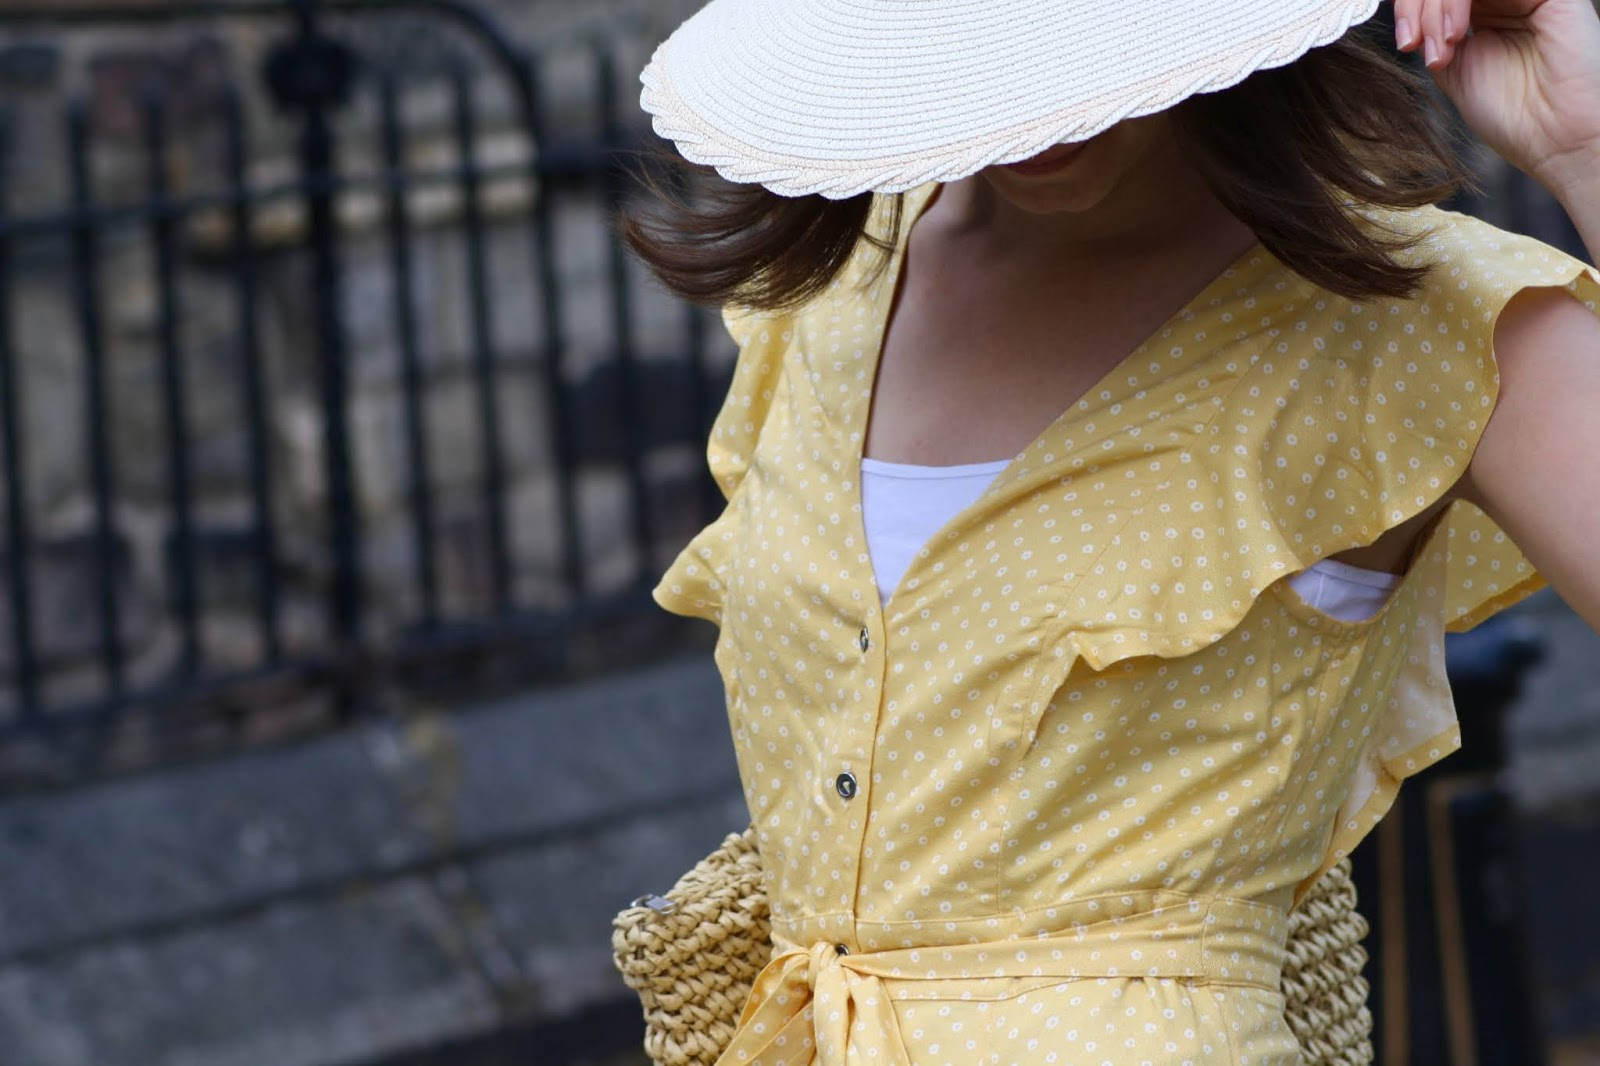 Abbey, wearing a yellow midi dress and straw hat, stands with her head down so that the brim of her hat can be seen